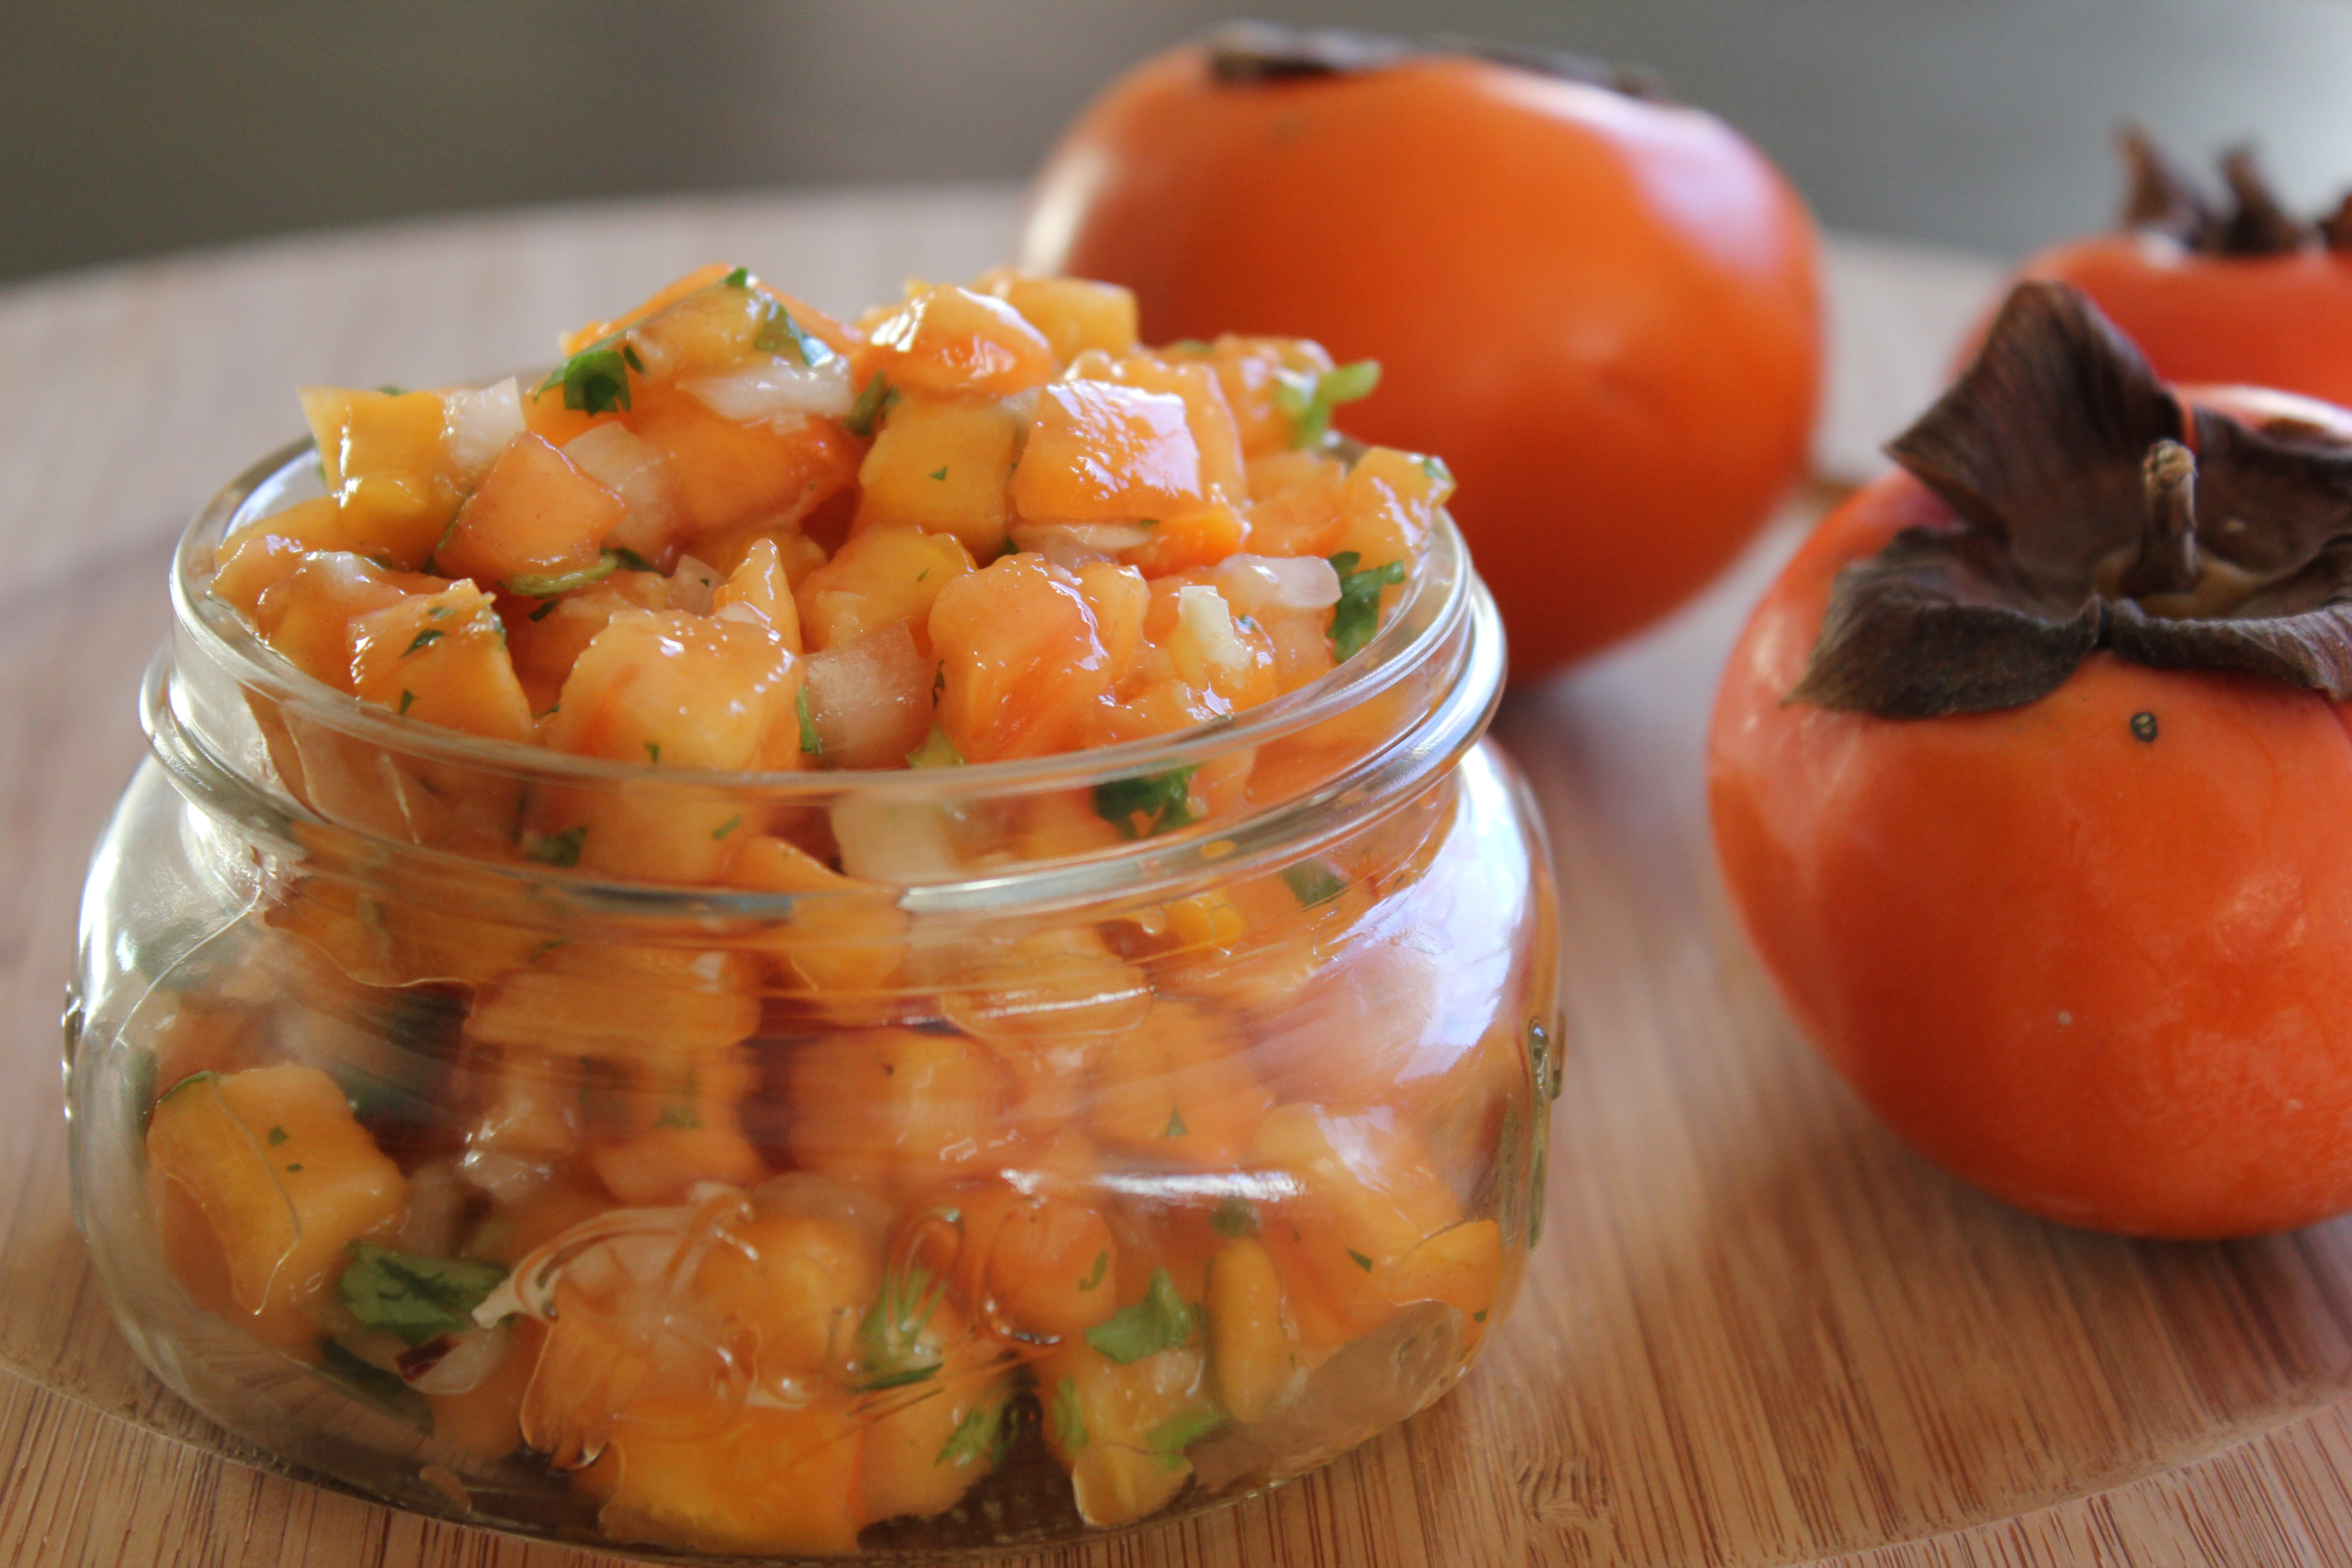 Fuyu Persimmon Salsa from My Fuyu Persimmons